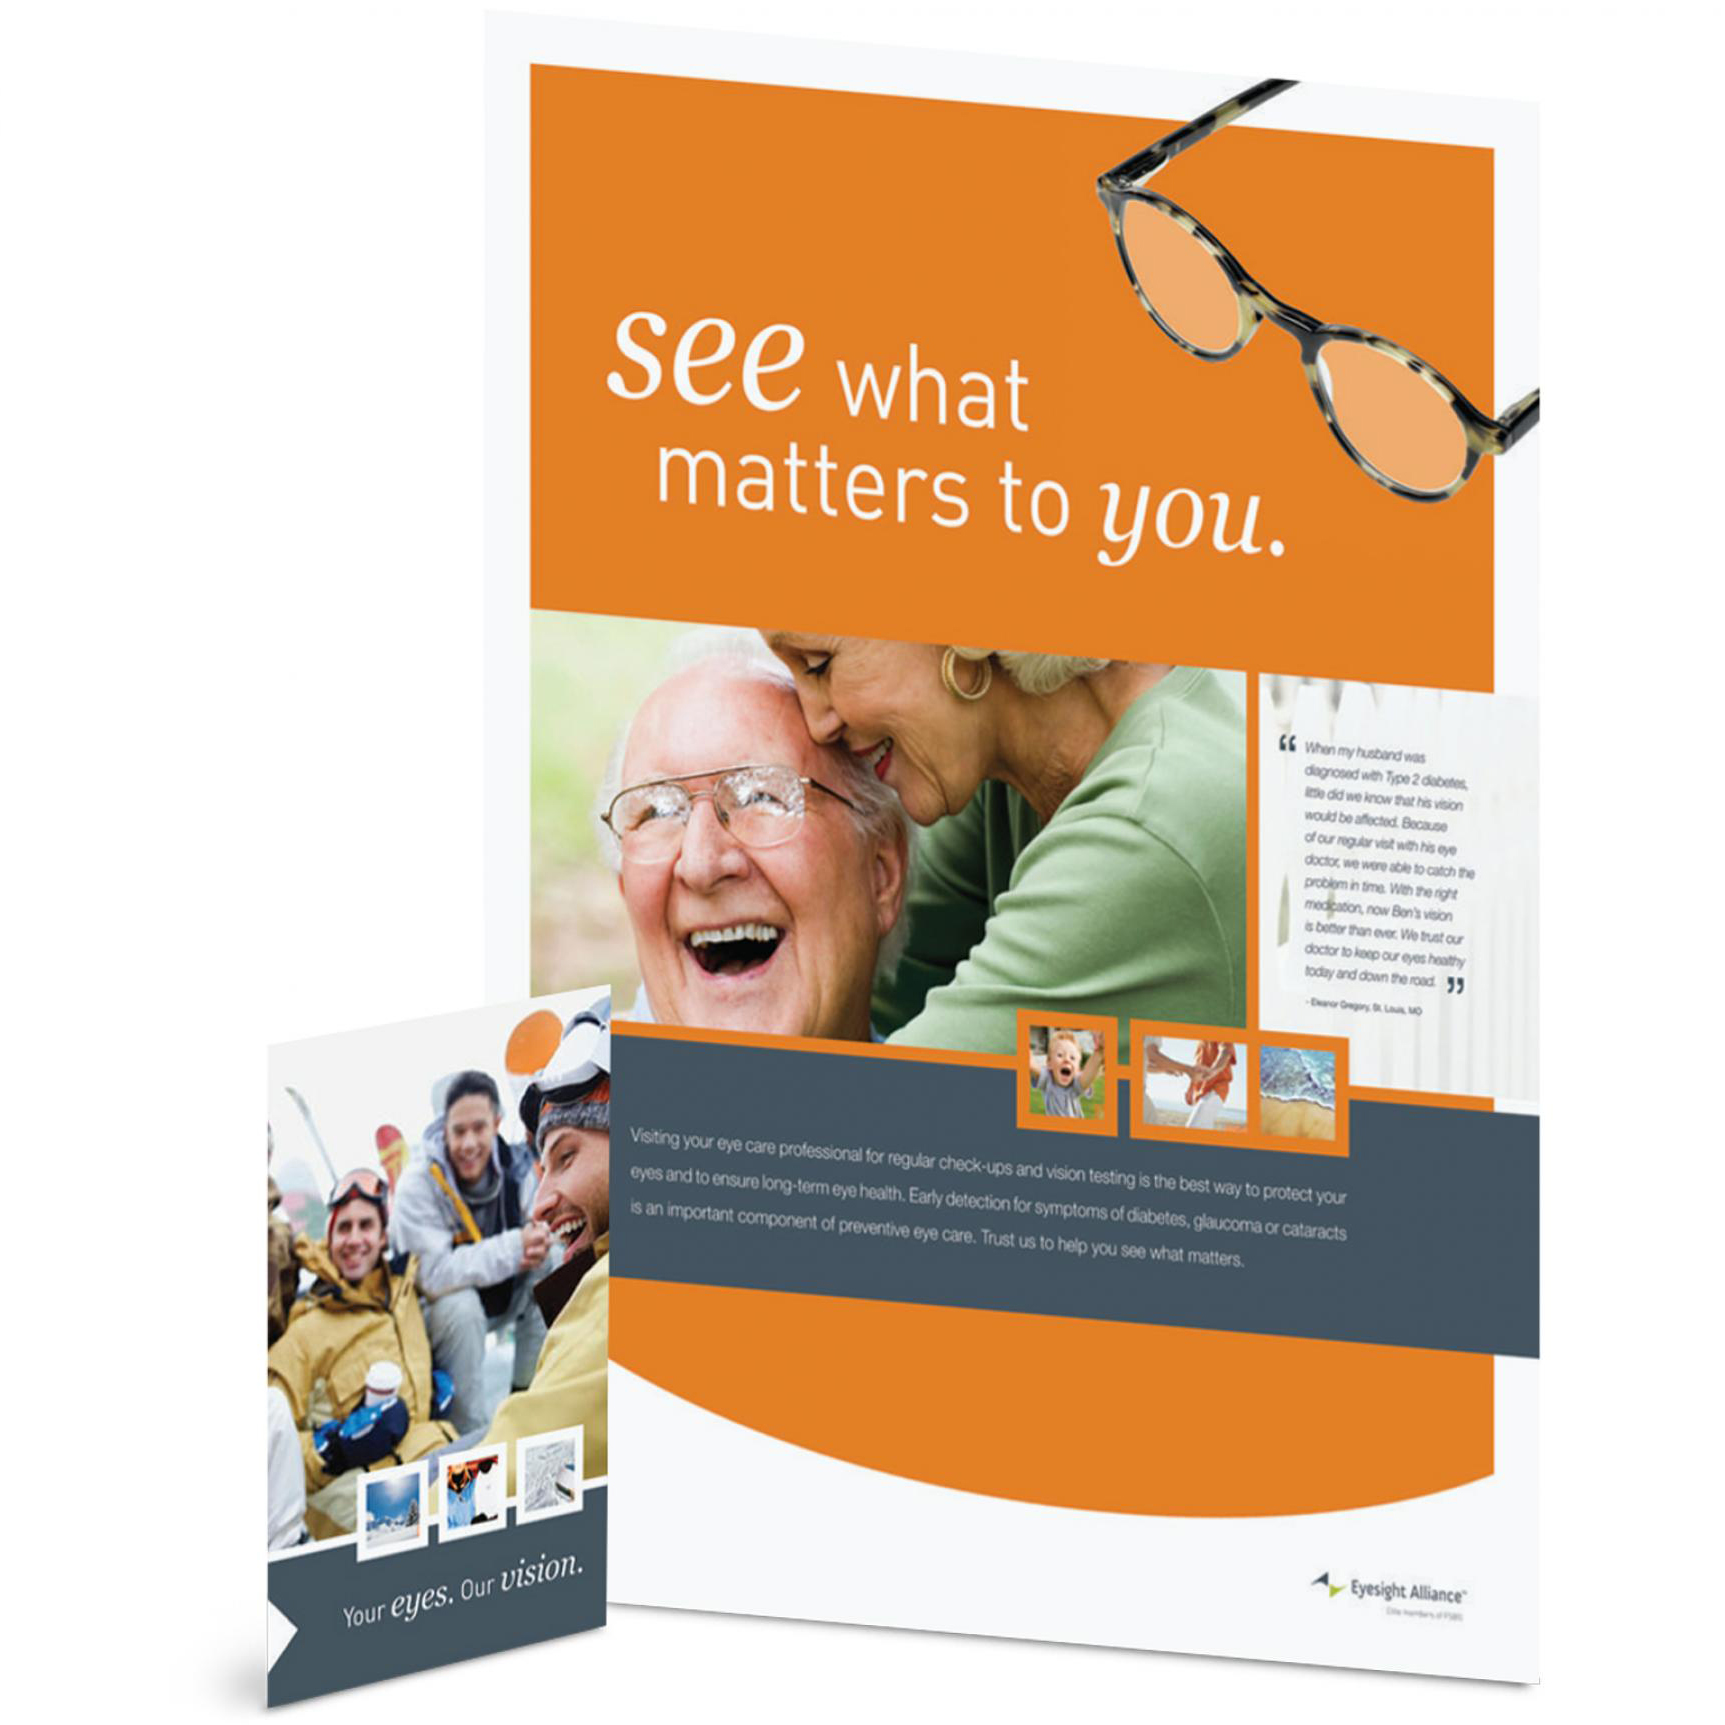 An example of marketing collateral for Soderberg Optical.